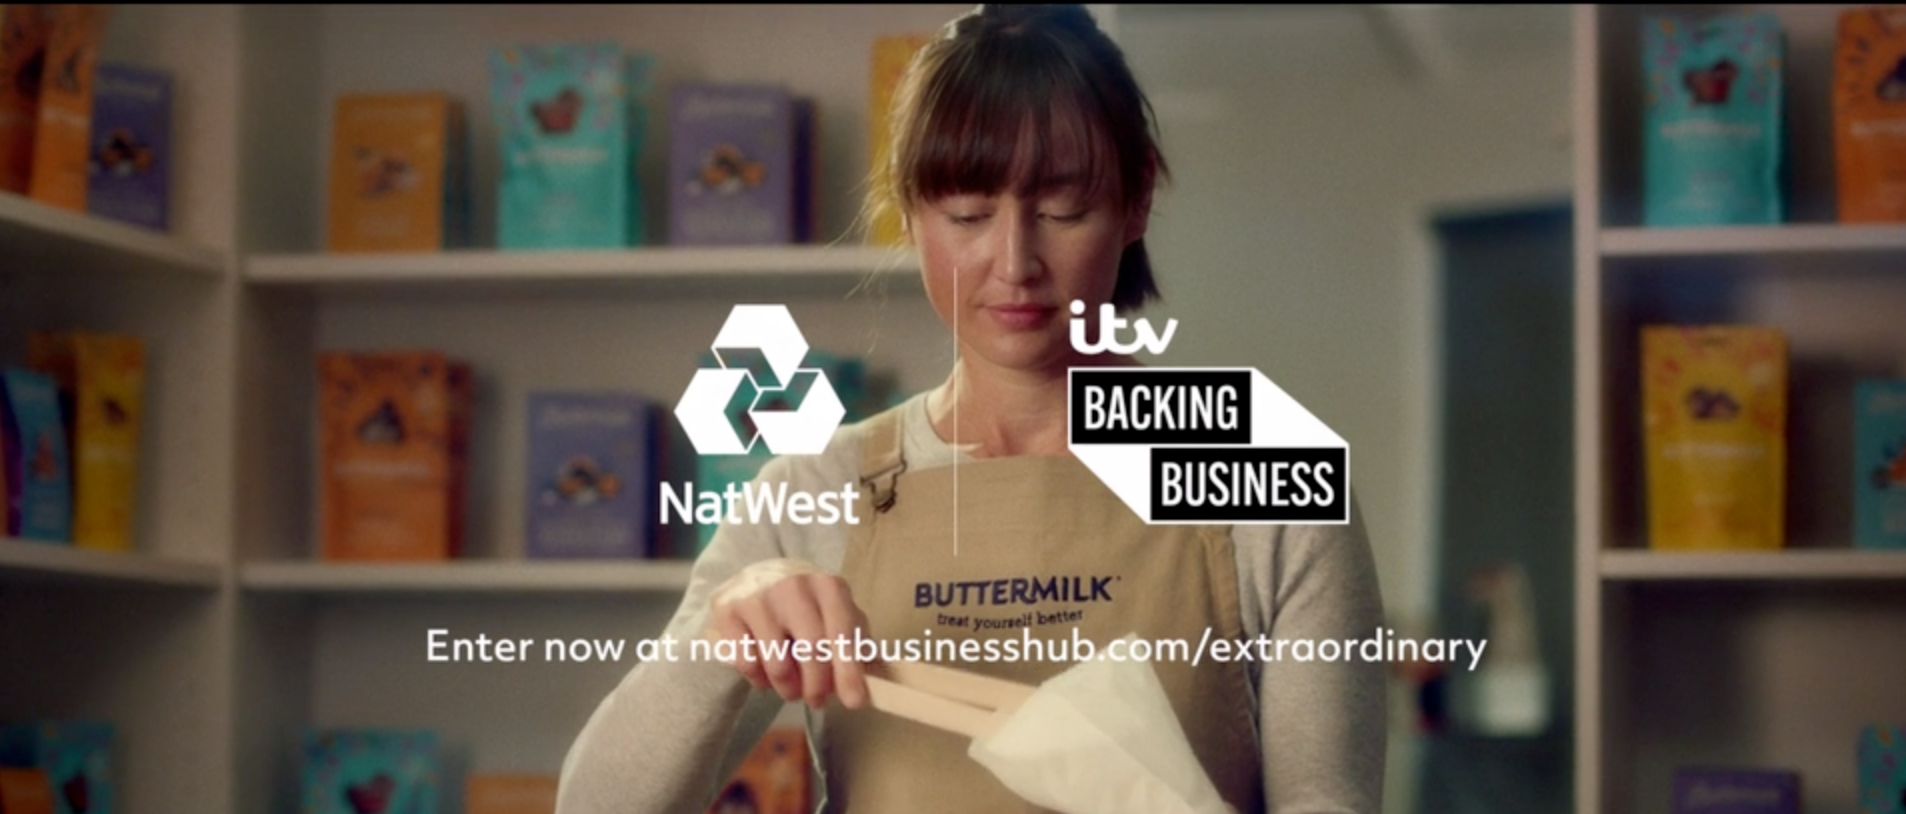 Natwest image.png